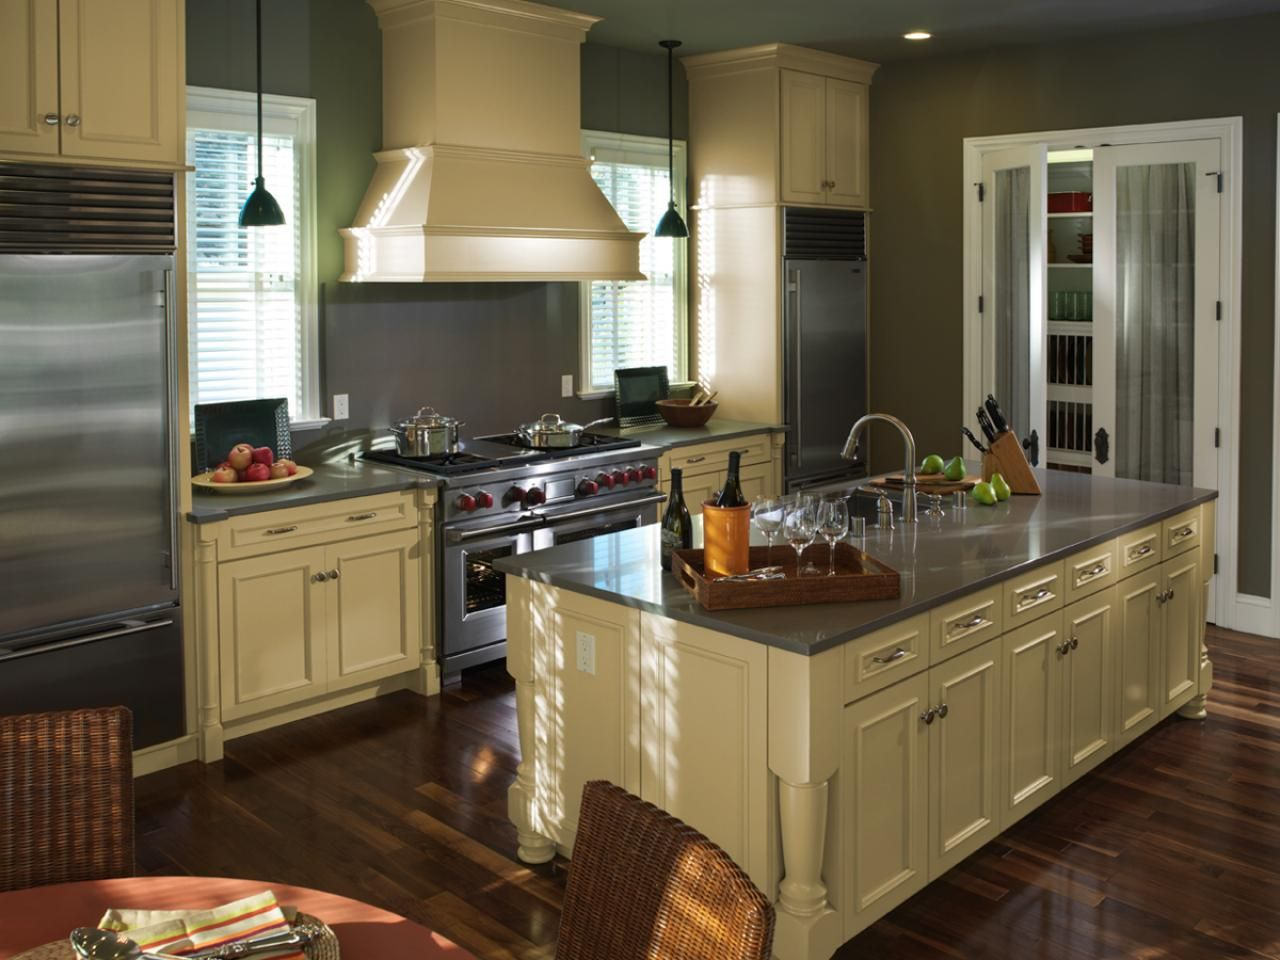 Dove Gray Walls And Cream Cabinets And Stove Hood Elegantly Blend Together  In This Gourmet Kitchen